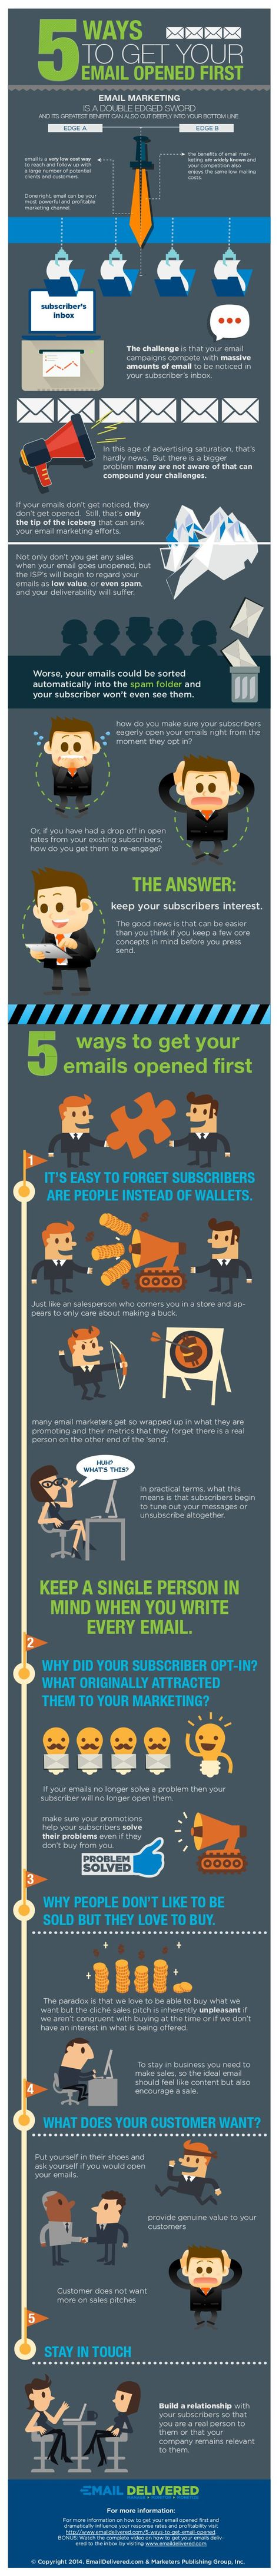 5 Ways To Get Your Email Opened First #infographic